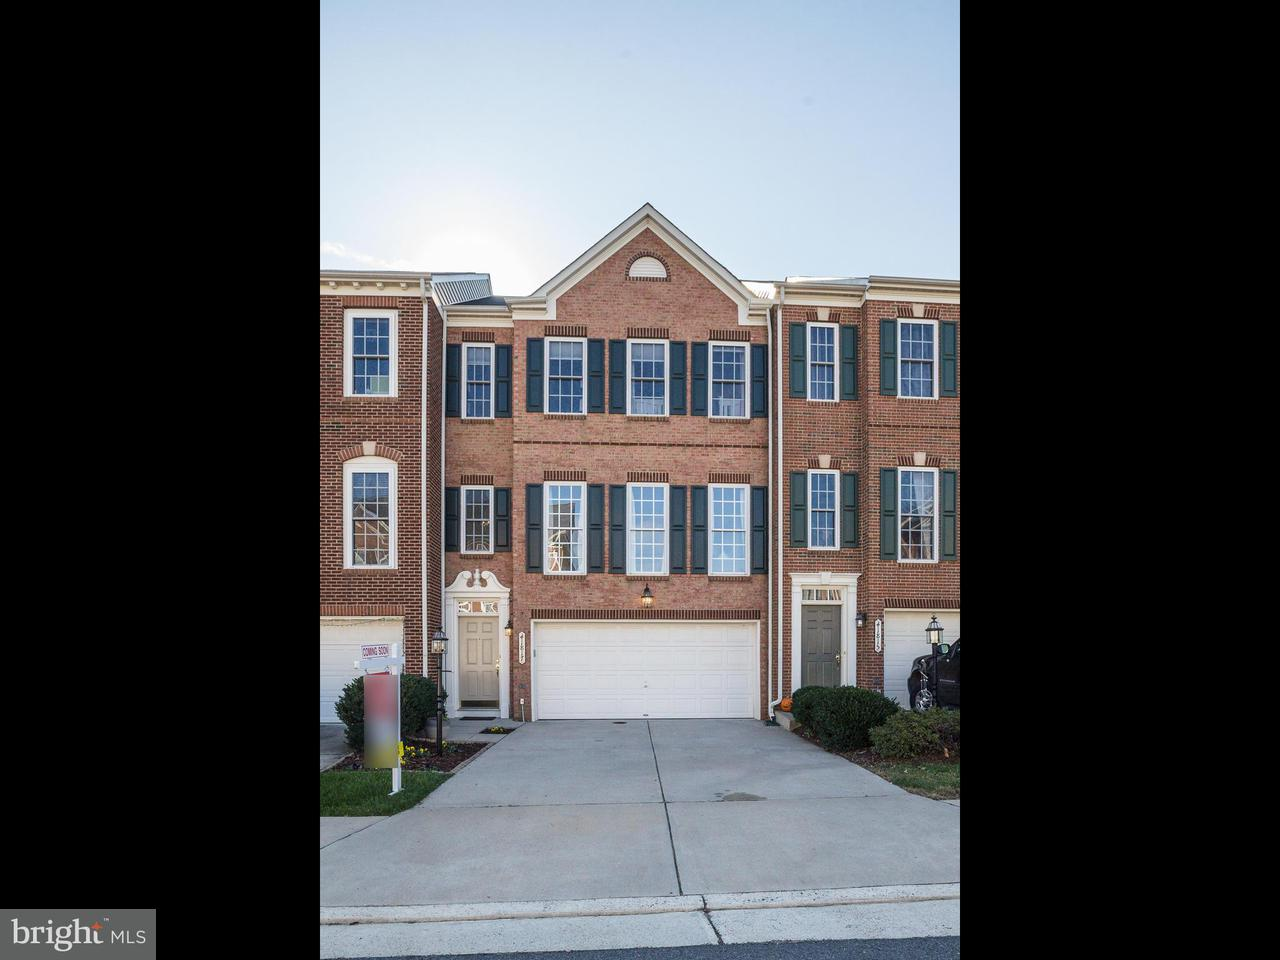 Townhouse for Sale at 41817 ELOQUENCE TER 41817 ELOQUENCE TER Aldie, Virginia 20105 United States